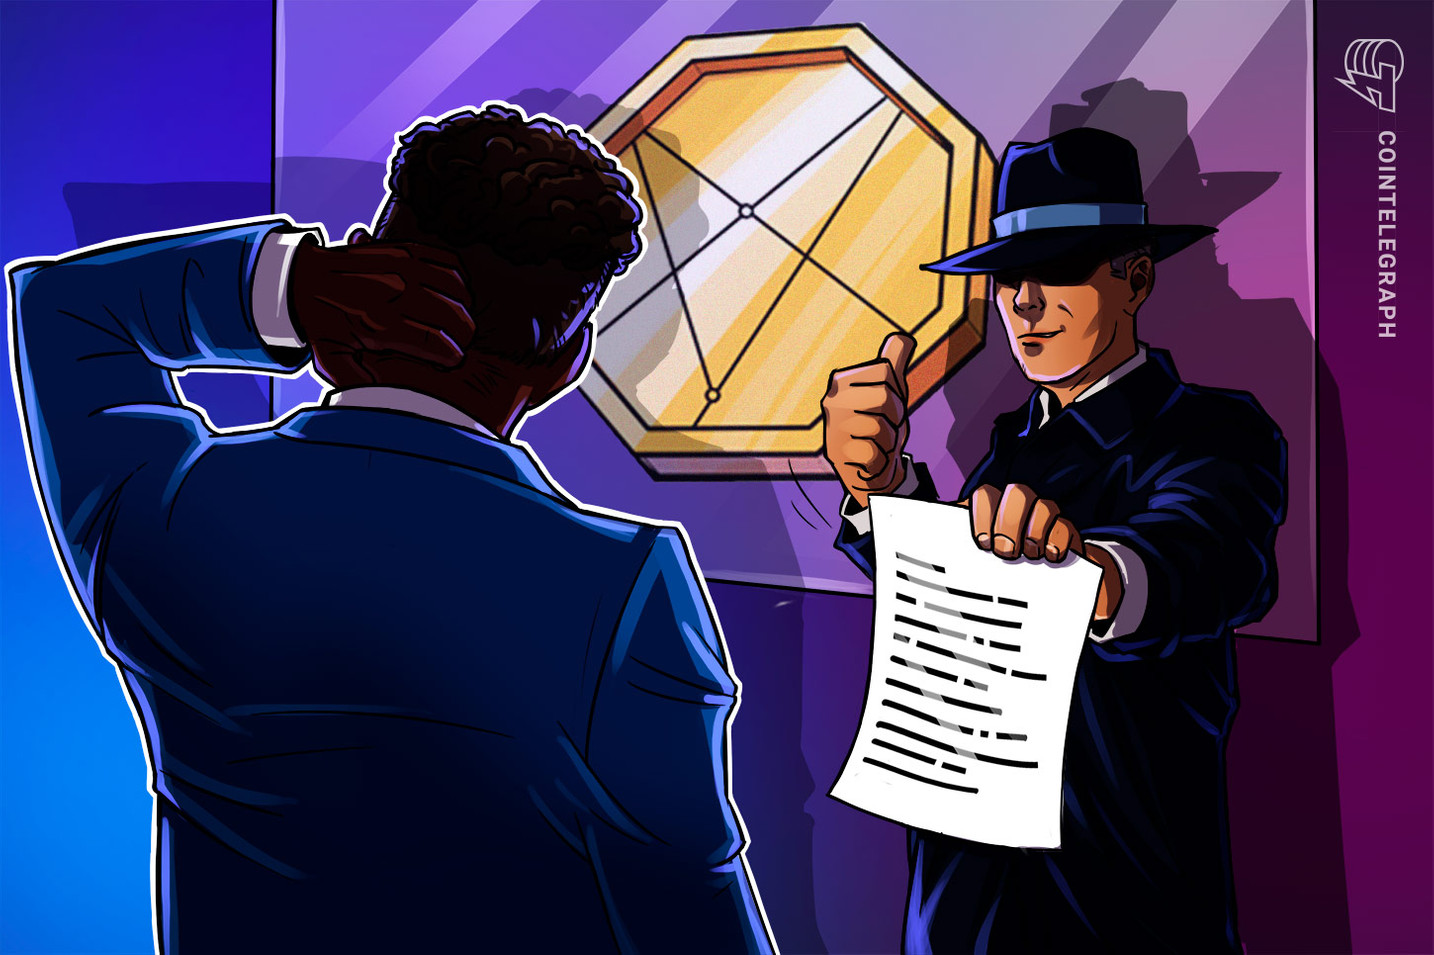 Texas Securities Watchdog Shuts Down Craigslist Crypto Scammer